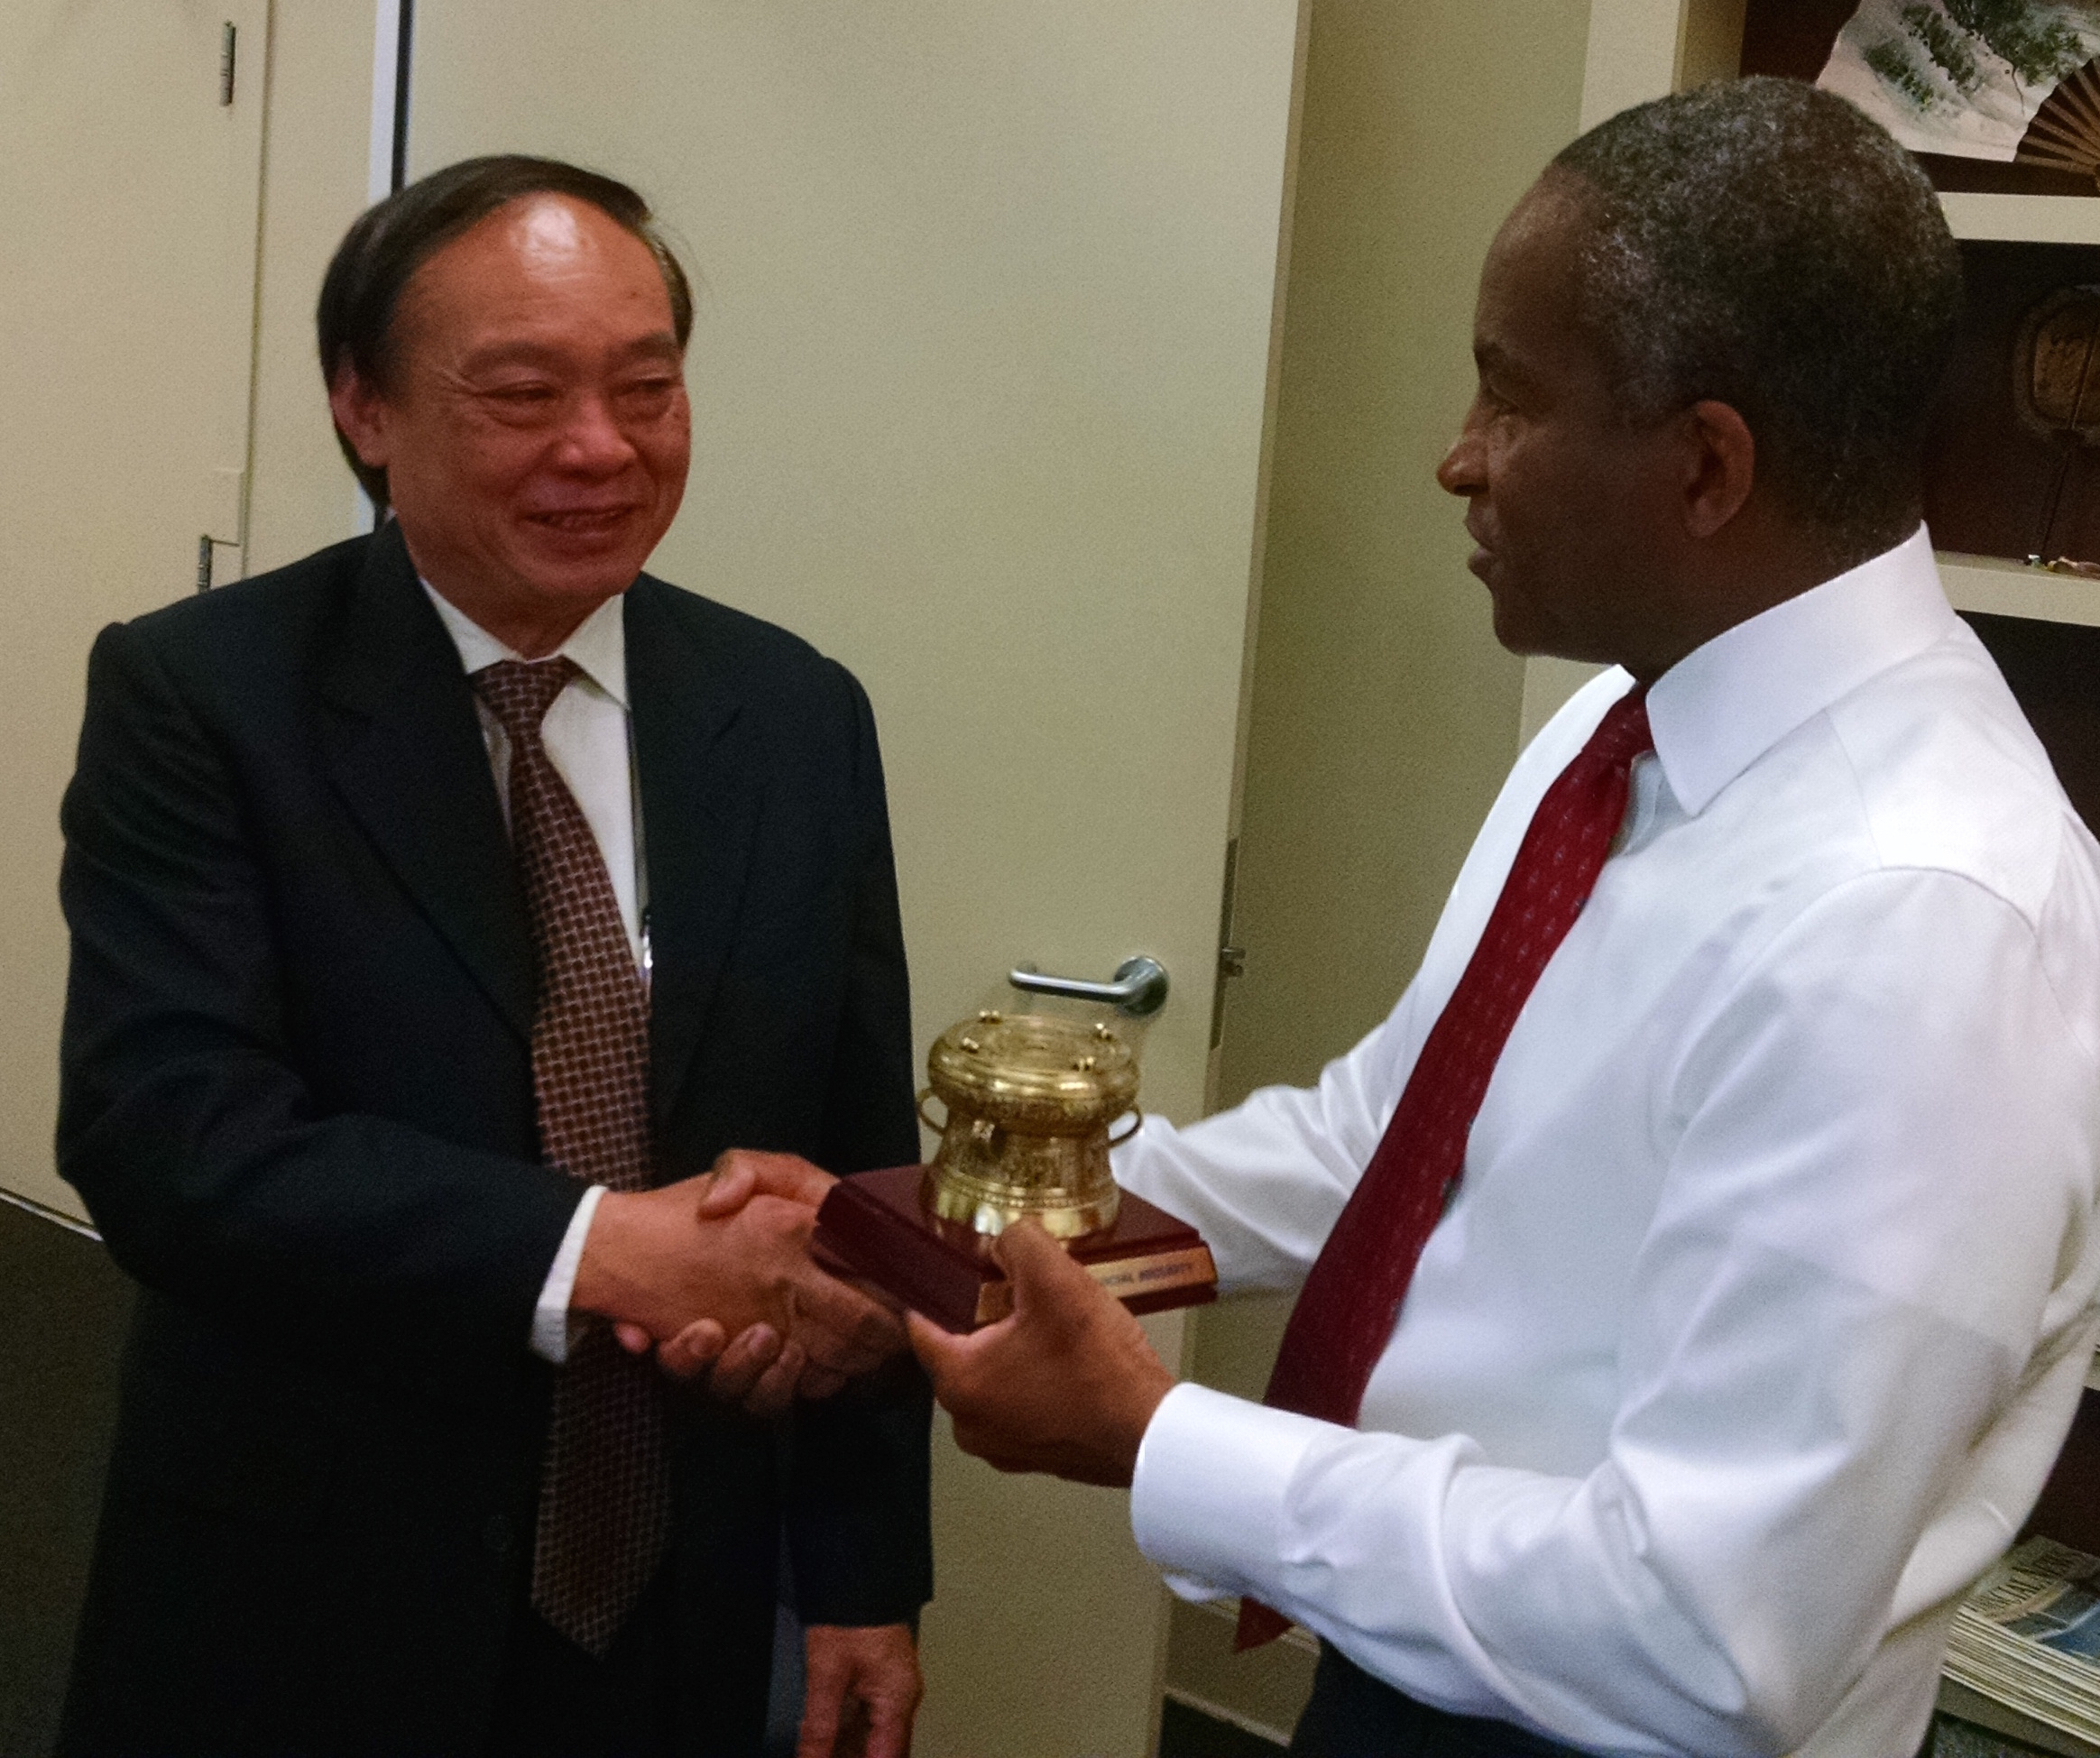 Mr. Nguyen Dinh Khuong, Deputy Director General, Vietnam Social Security (VSS) with PPI President Lionel Johnson at the PPI office in San Francisco, CA.